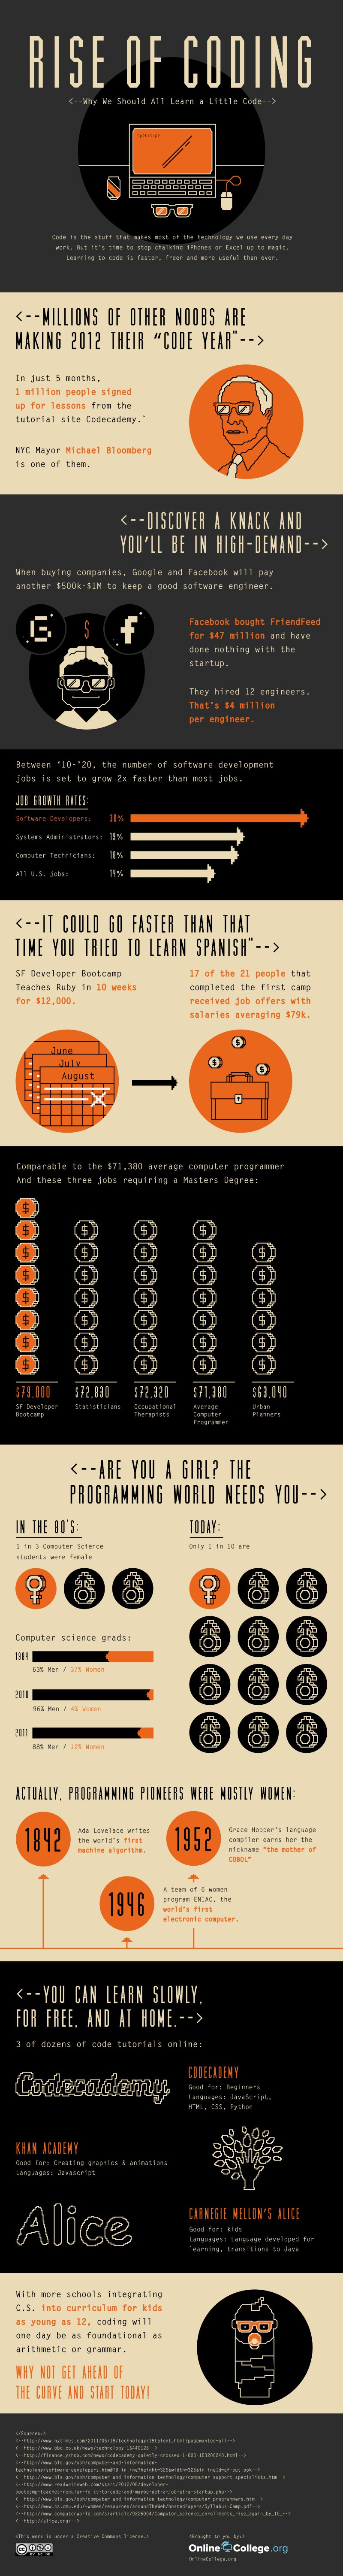 Why We Should All Learn Coding Infographic